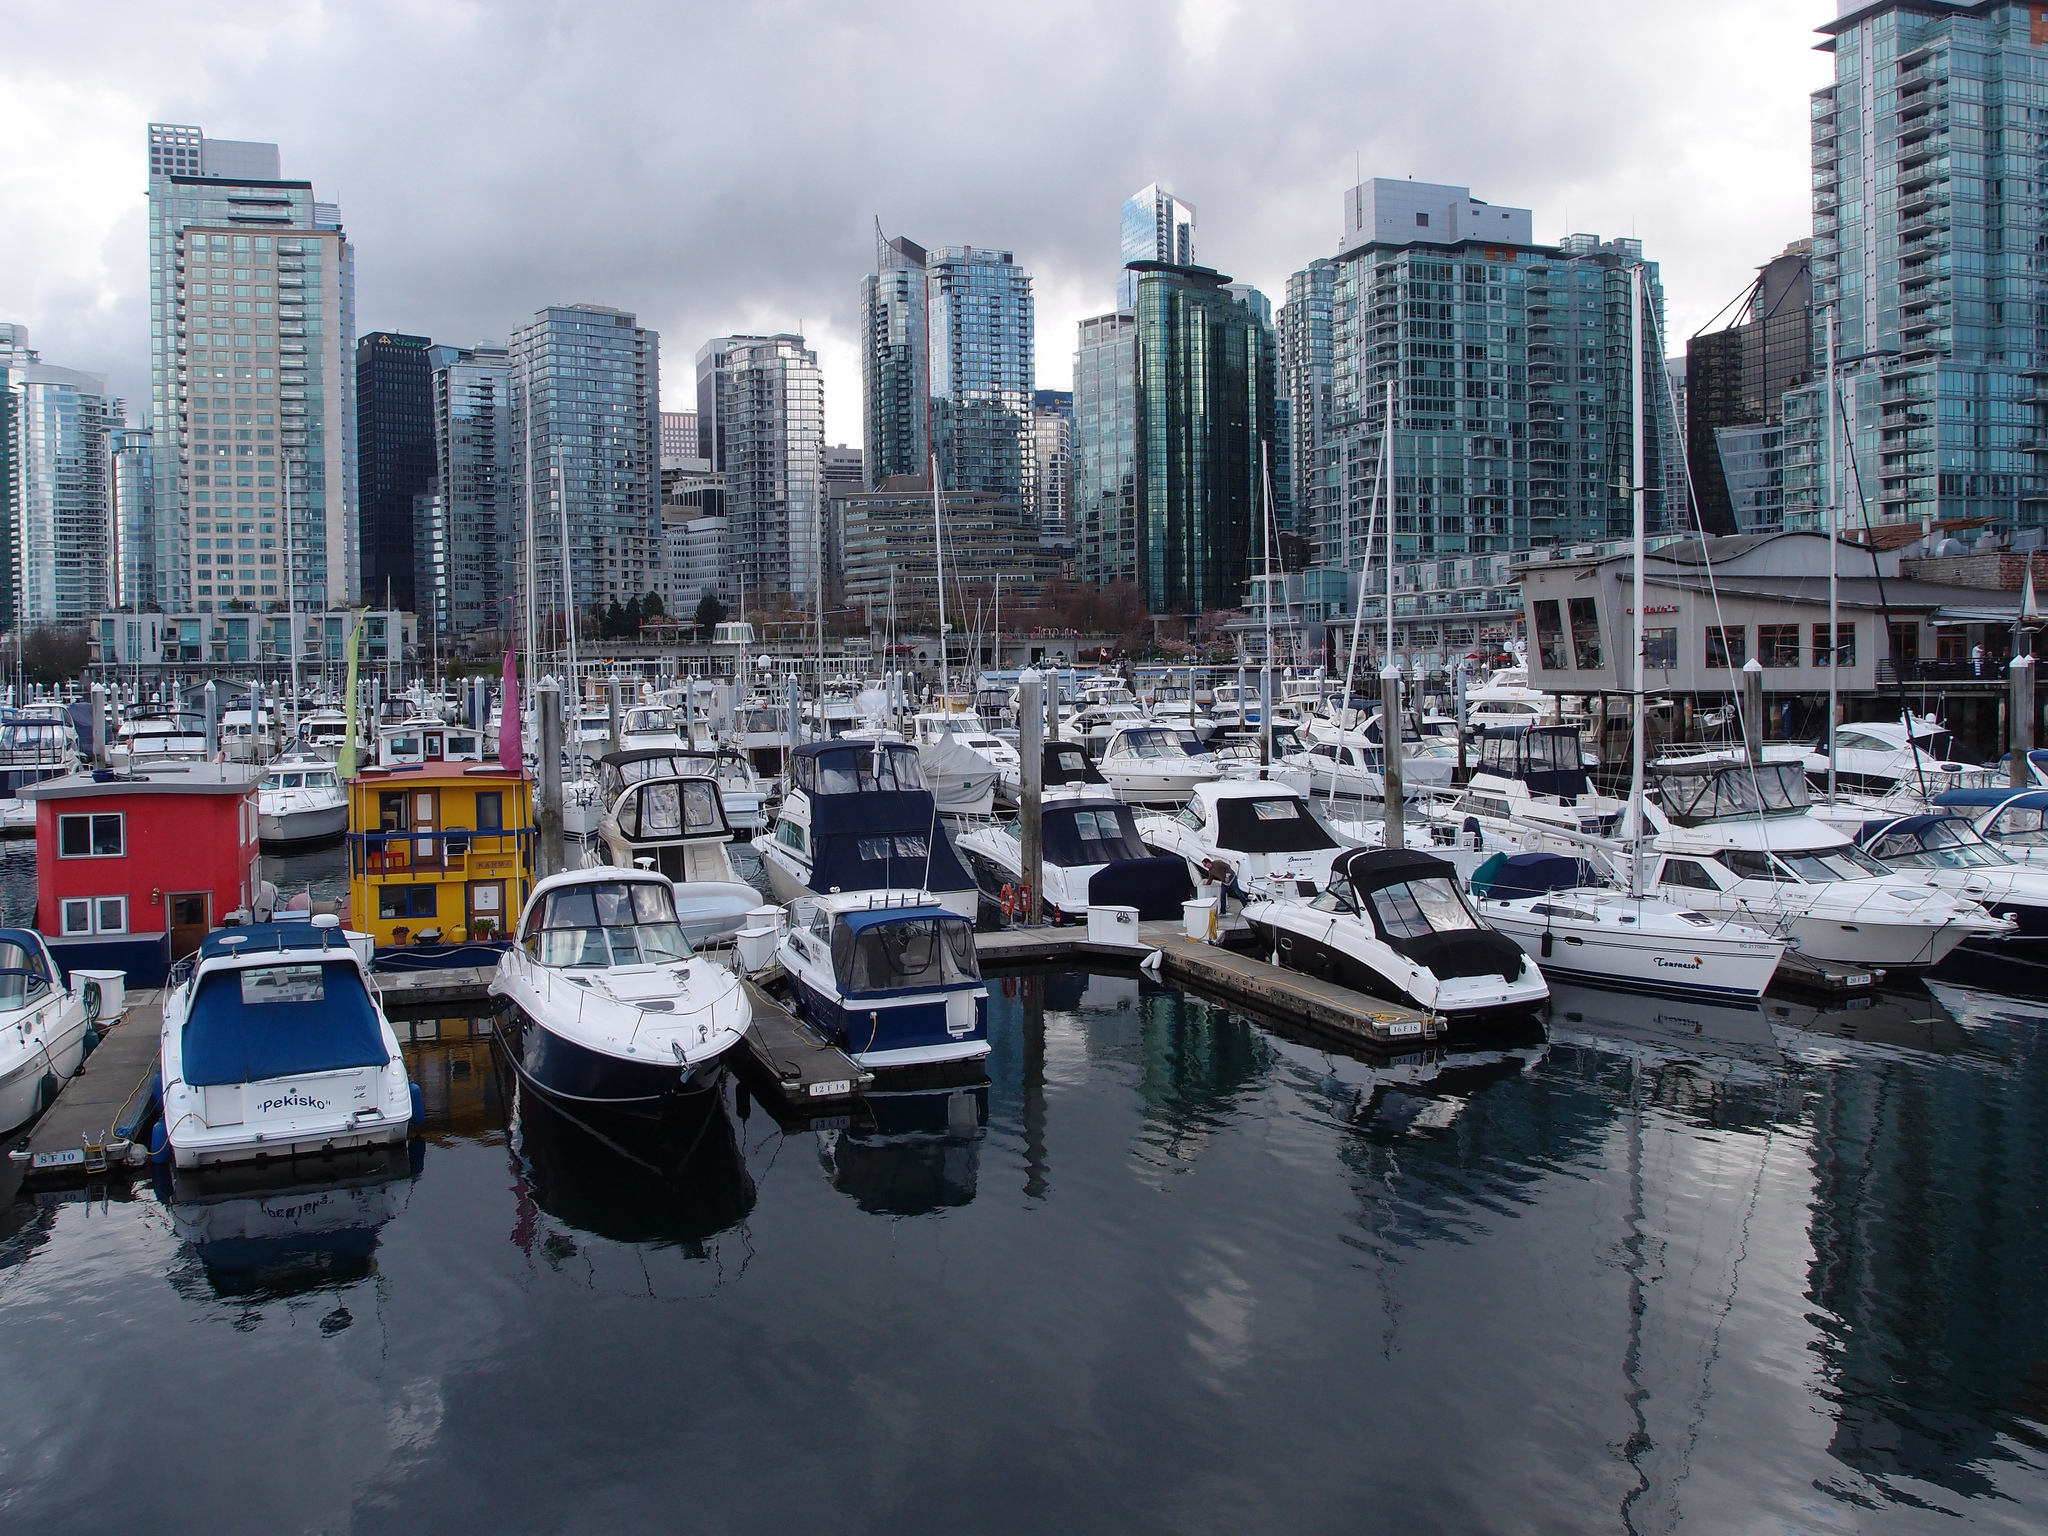 Coal Harbour Marina in Vancouver, BC